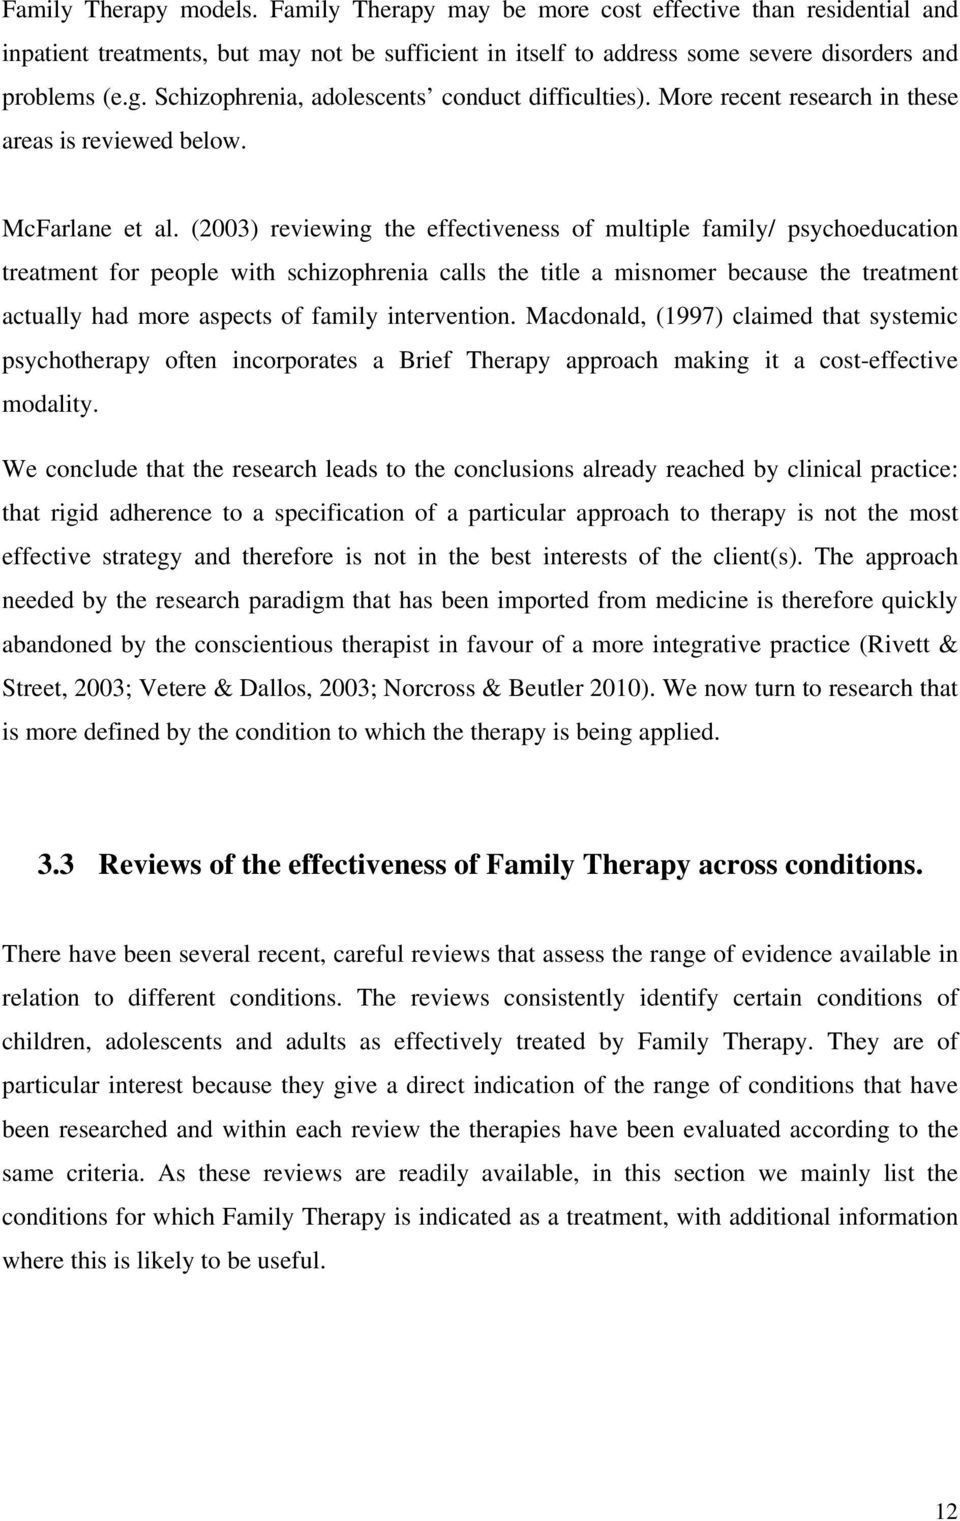 (2003) reviewing the effectiveness of multiple family/ psychoeducation treatment for people with schizophrenia calls the title a misnomer because the treatment actually had more aspects of family